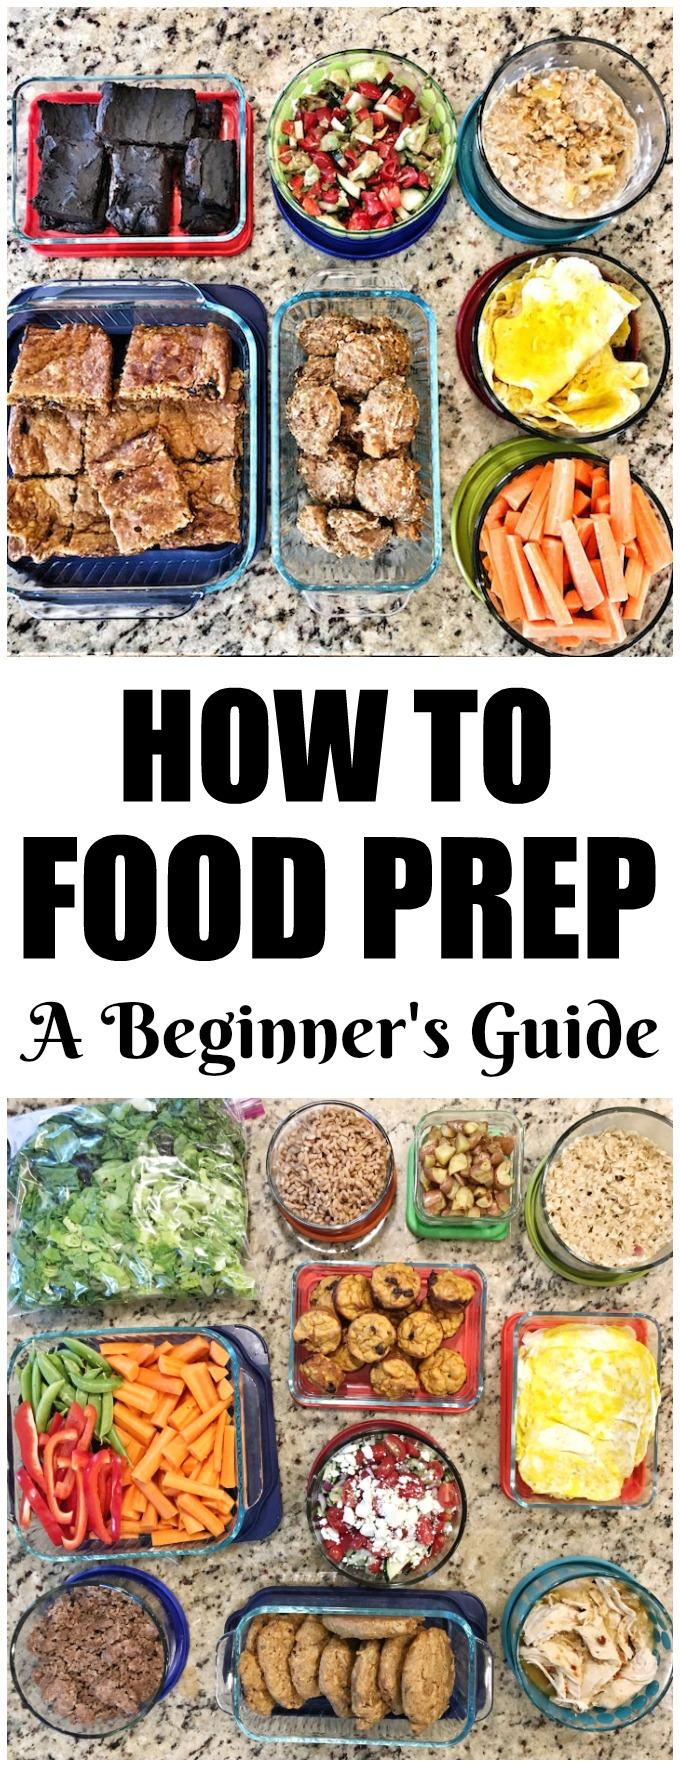 A Beginner's Guide To Food Prep. Follow these 5 simple steps to learn how to food prep. They will help you get organized and prepared so that your time prepping food is more productive and less stressful. Plus a step-by-step example!